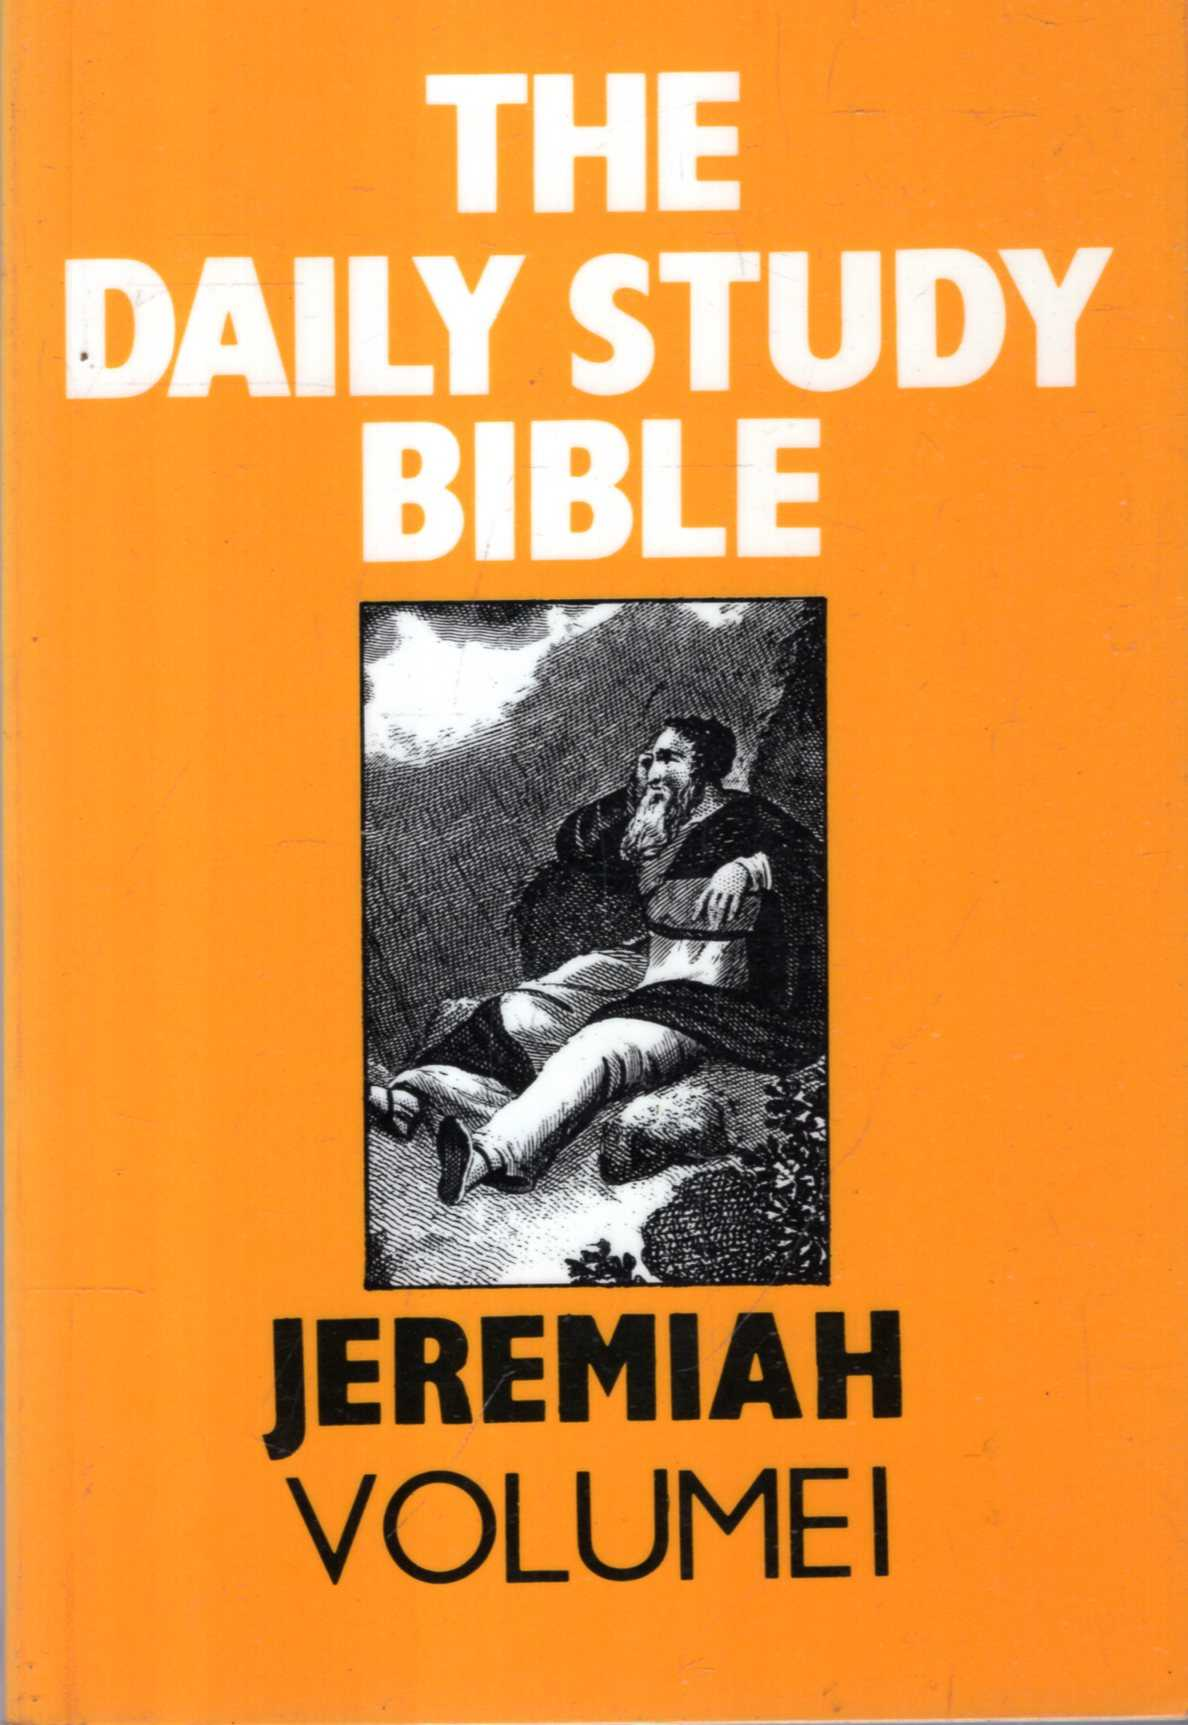 Image for Jeremiah: volume 1 (Daily Study Bible)